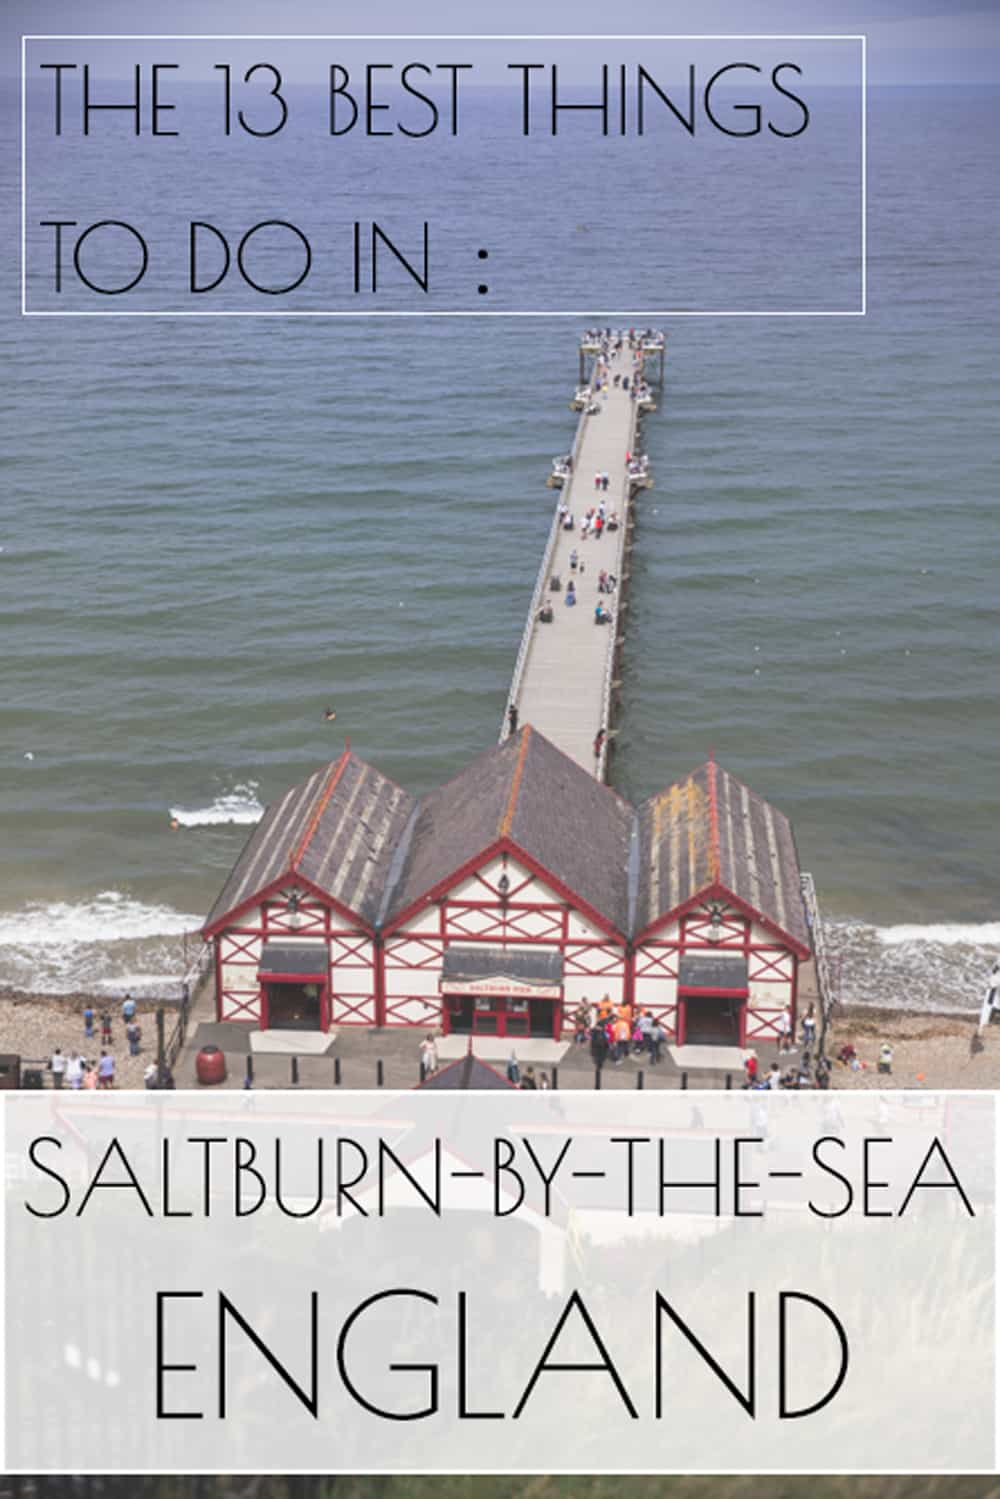 13 Best Things to Do in Saltburn-by-the-Sea